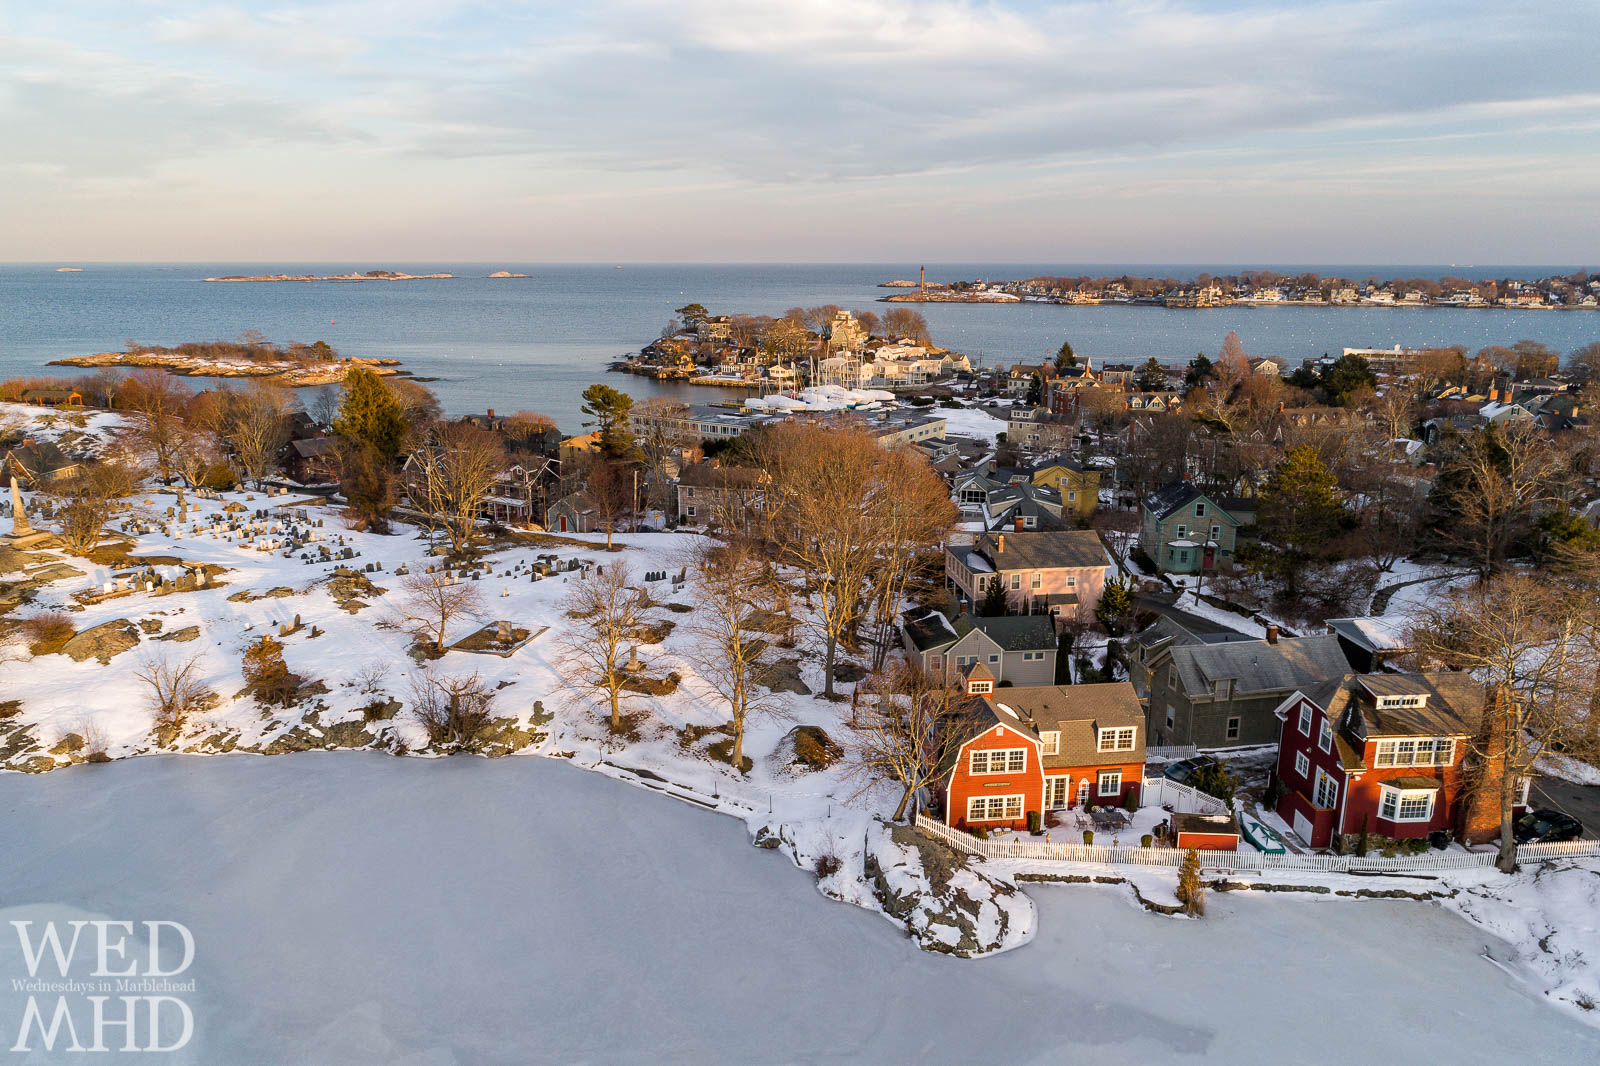 An aerial view of golden light on Redd's pond includes Old Burial Hill, Gerry Island, Fort Sewall and Marblehead Neck